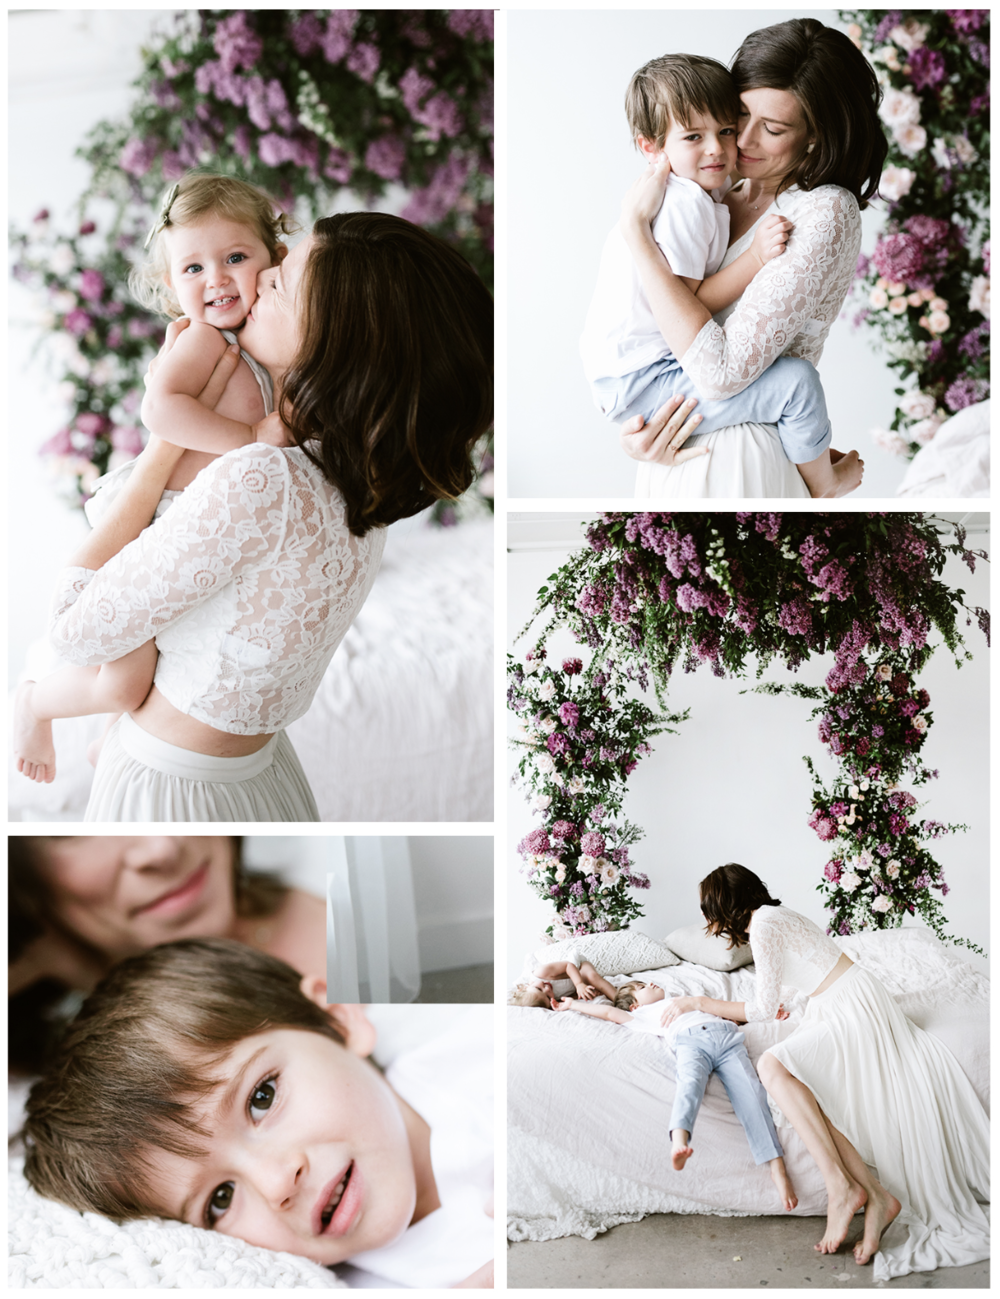 Examples from last year's shoot taken by Suzy Holman of Simply Suzy Photography, Denver, CO.